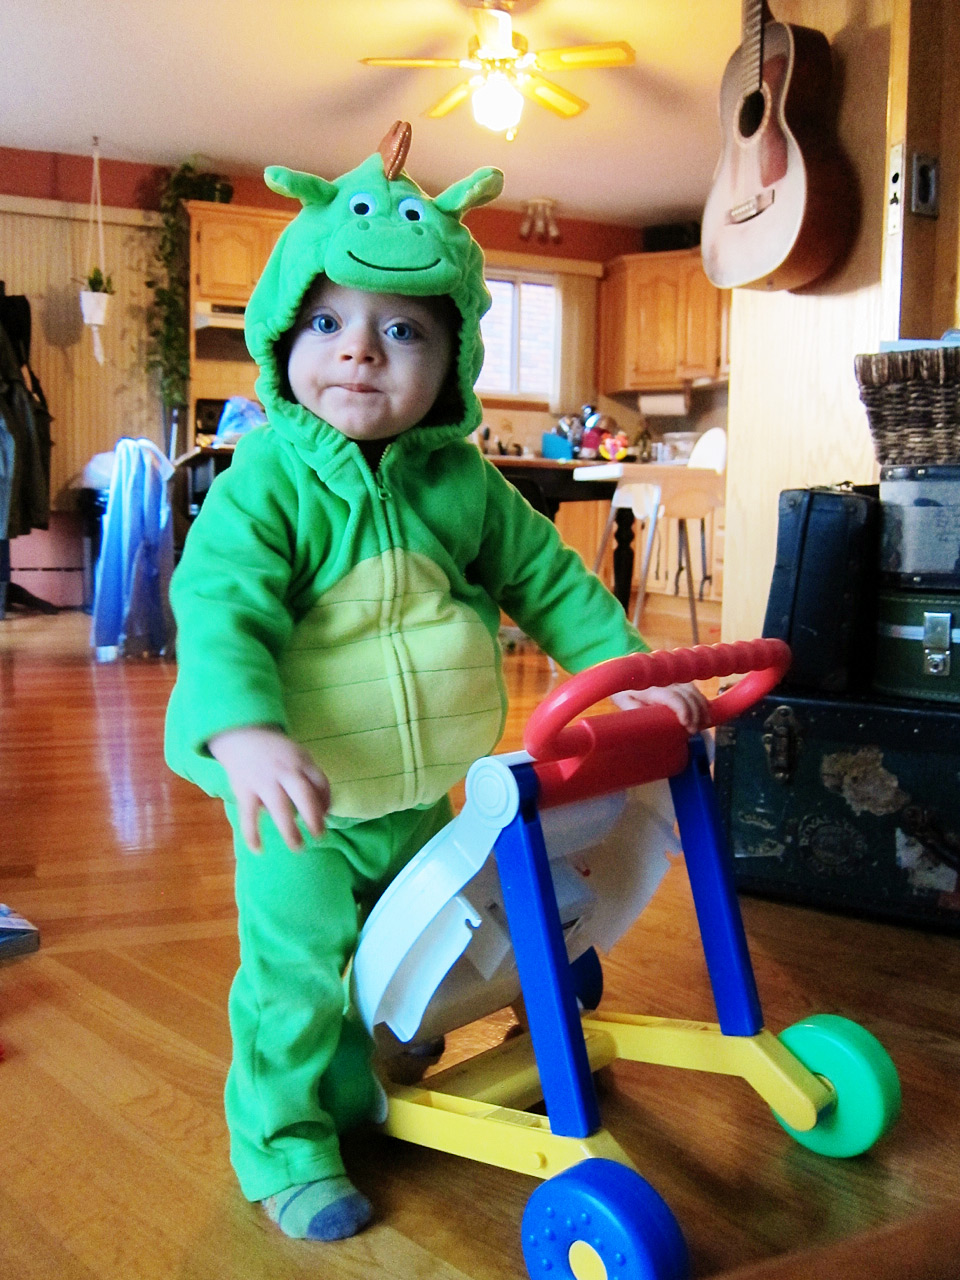 Boo Boo the dragon and his walker